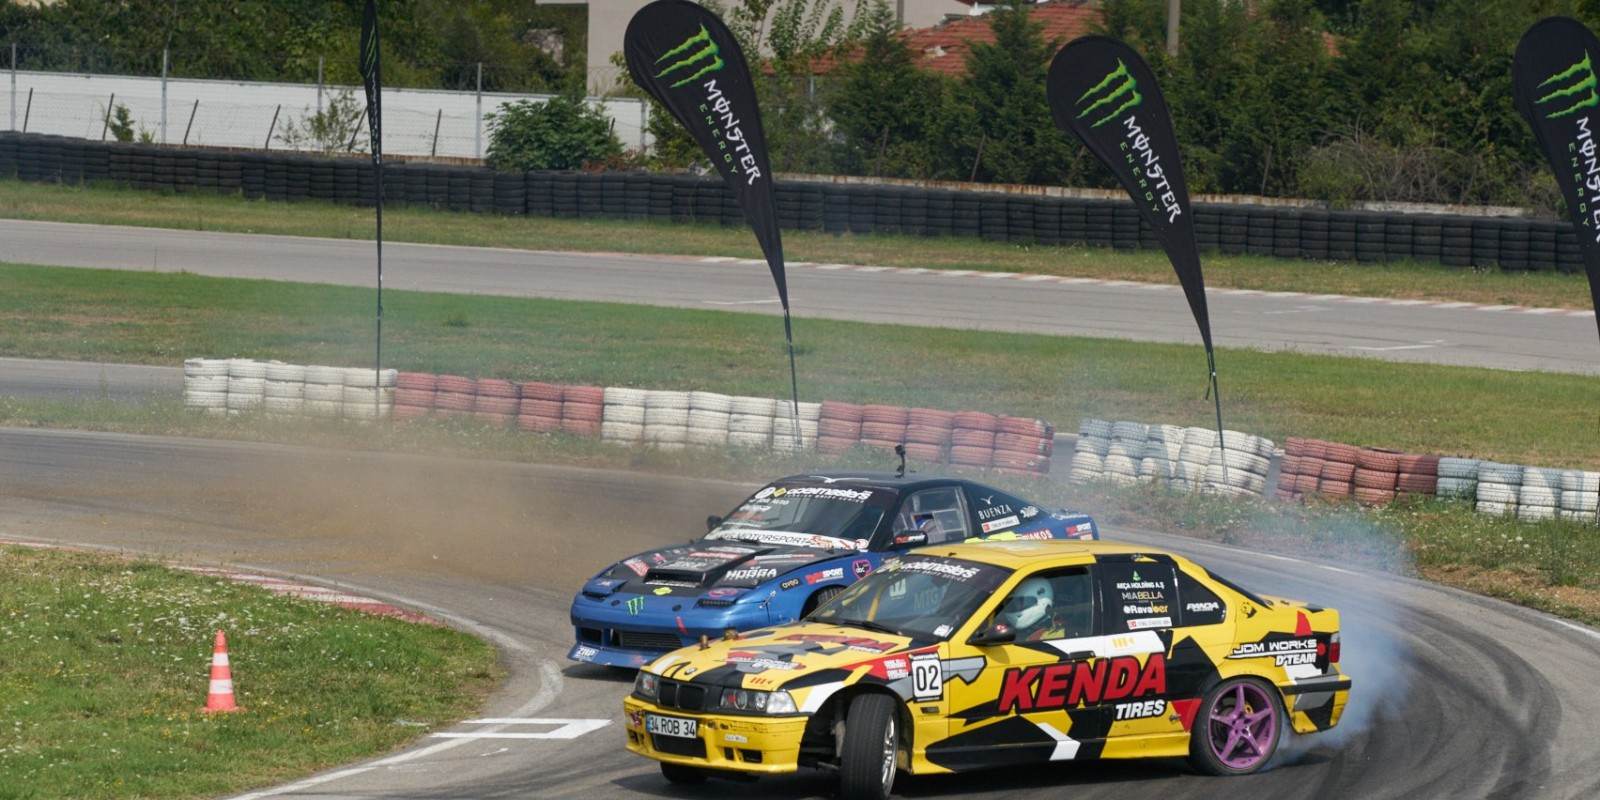 Event shots from the 3rd Round of the ApexMasters Turkish Drift Series - we just sponsored the event - branding on site